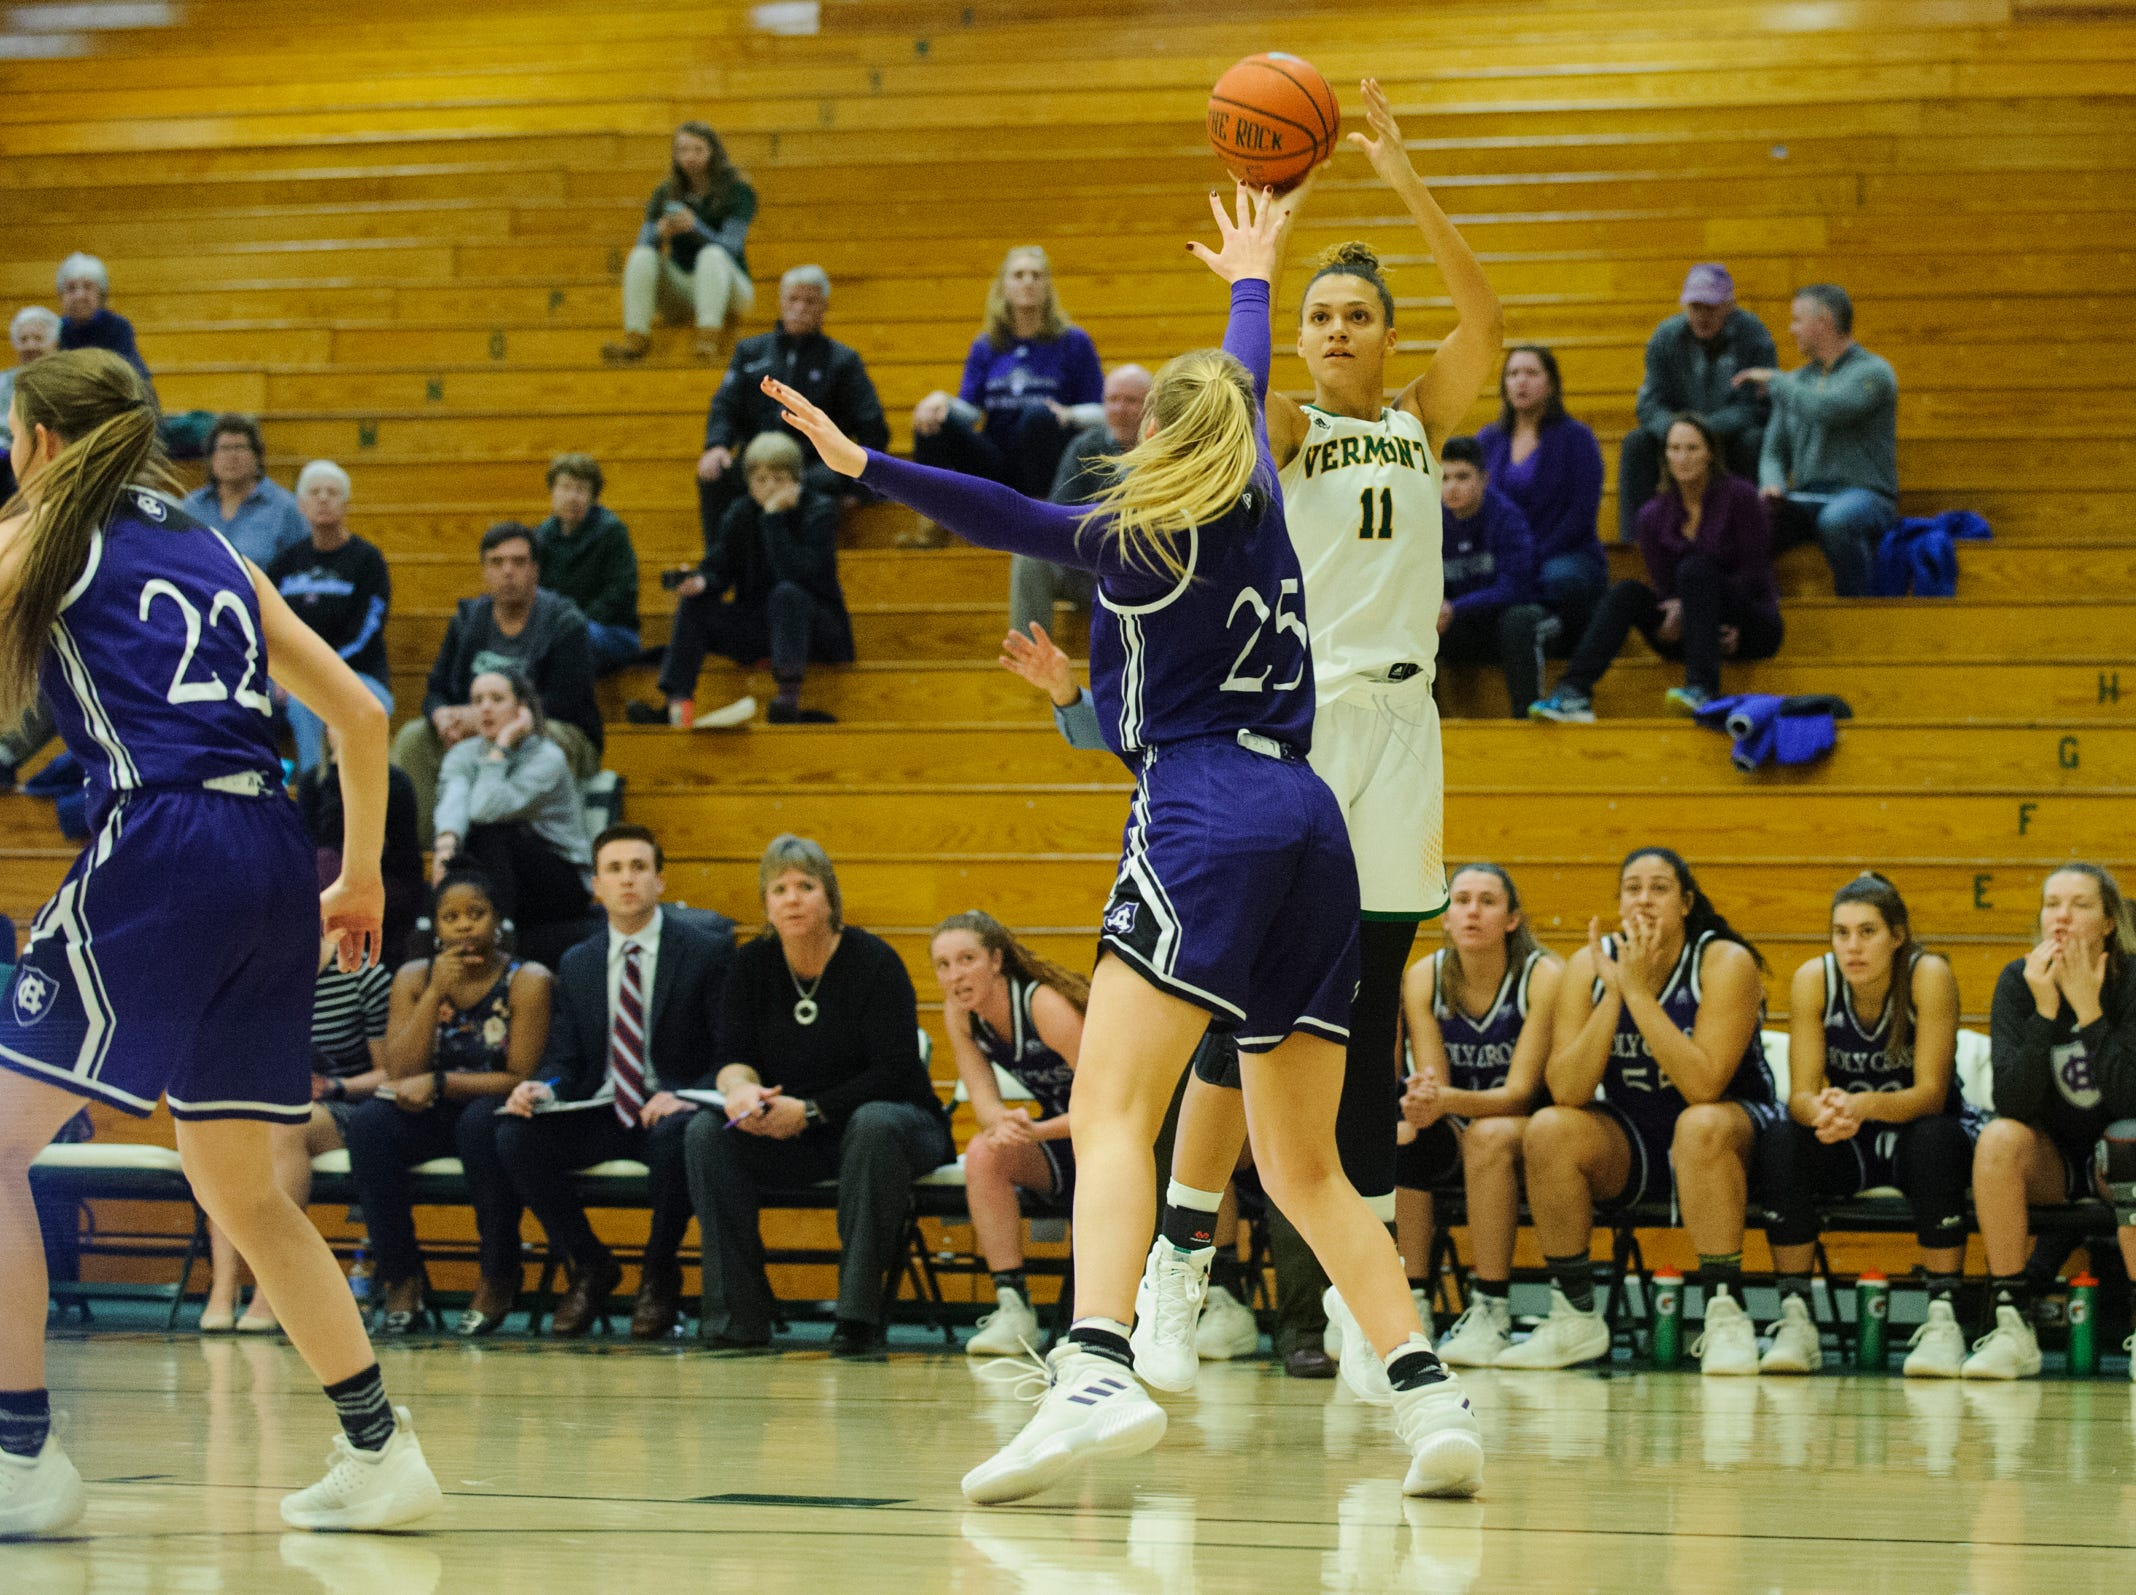 Vermont's Candice Wright (11) shoots a three pointer over Holy Cross' Lauren Manis (25) during the women's basketball game between the Holy Cross Crusaders and the Vermont Catamounts at Patrick Gym on Wednesday night November 28, 2018 in Burlington.